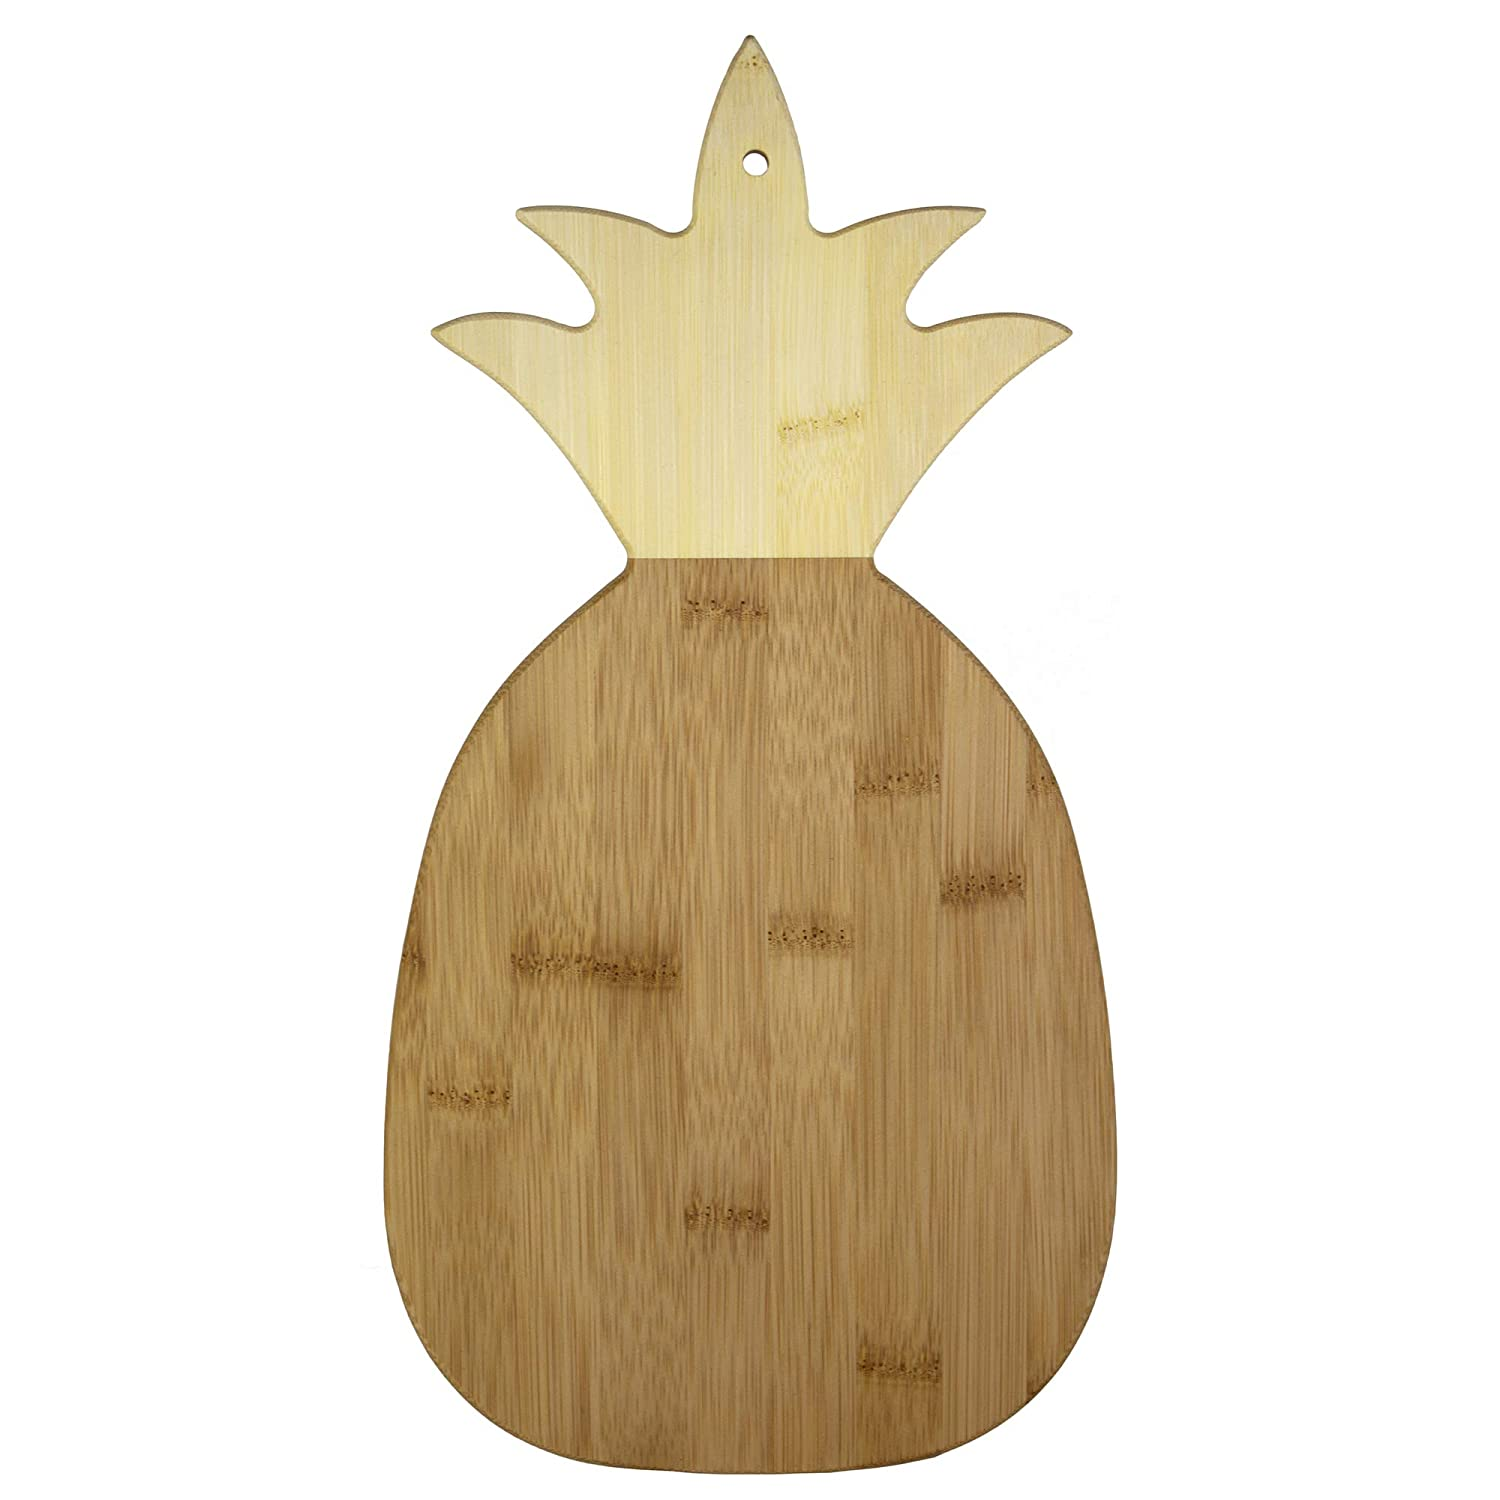 Totally Bamboo 20-7640 pineapple cutting board, One Size,